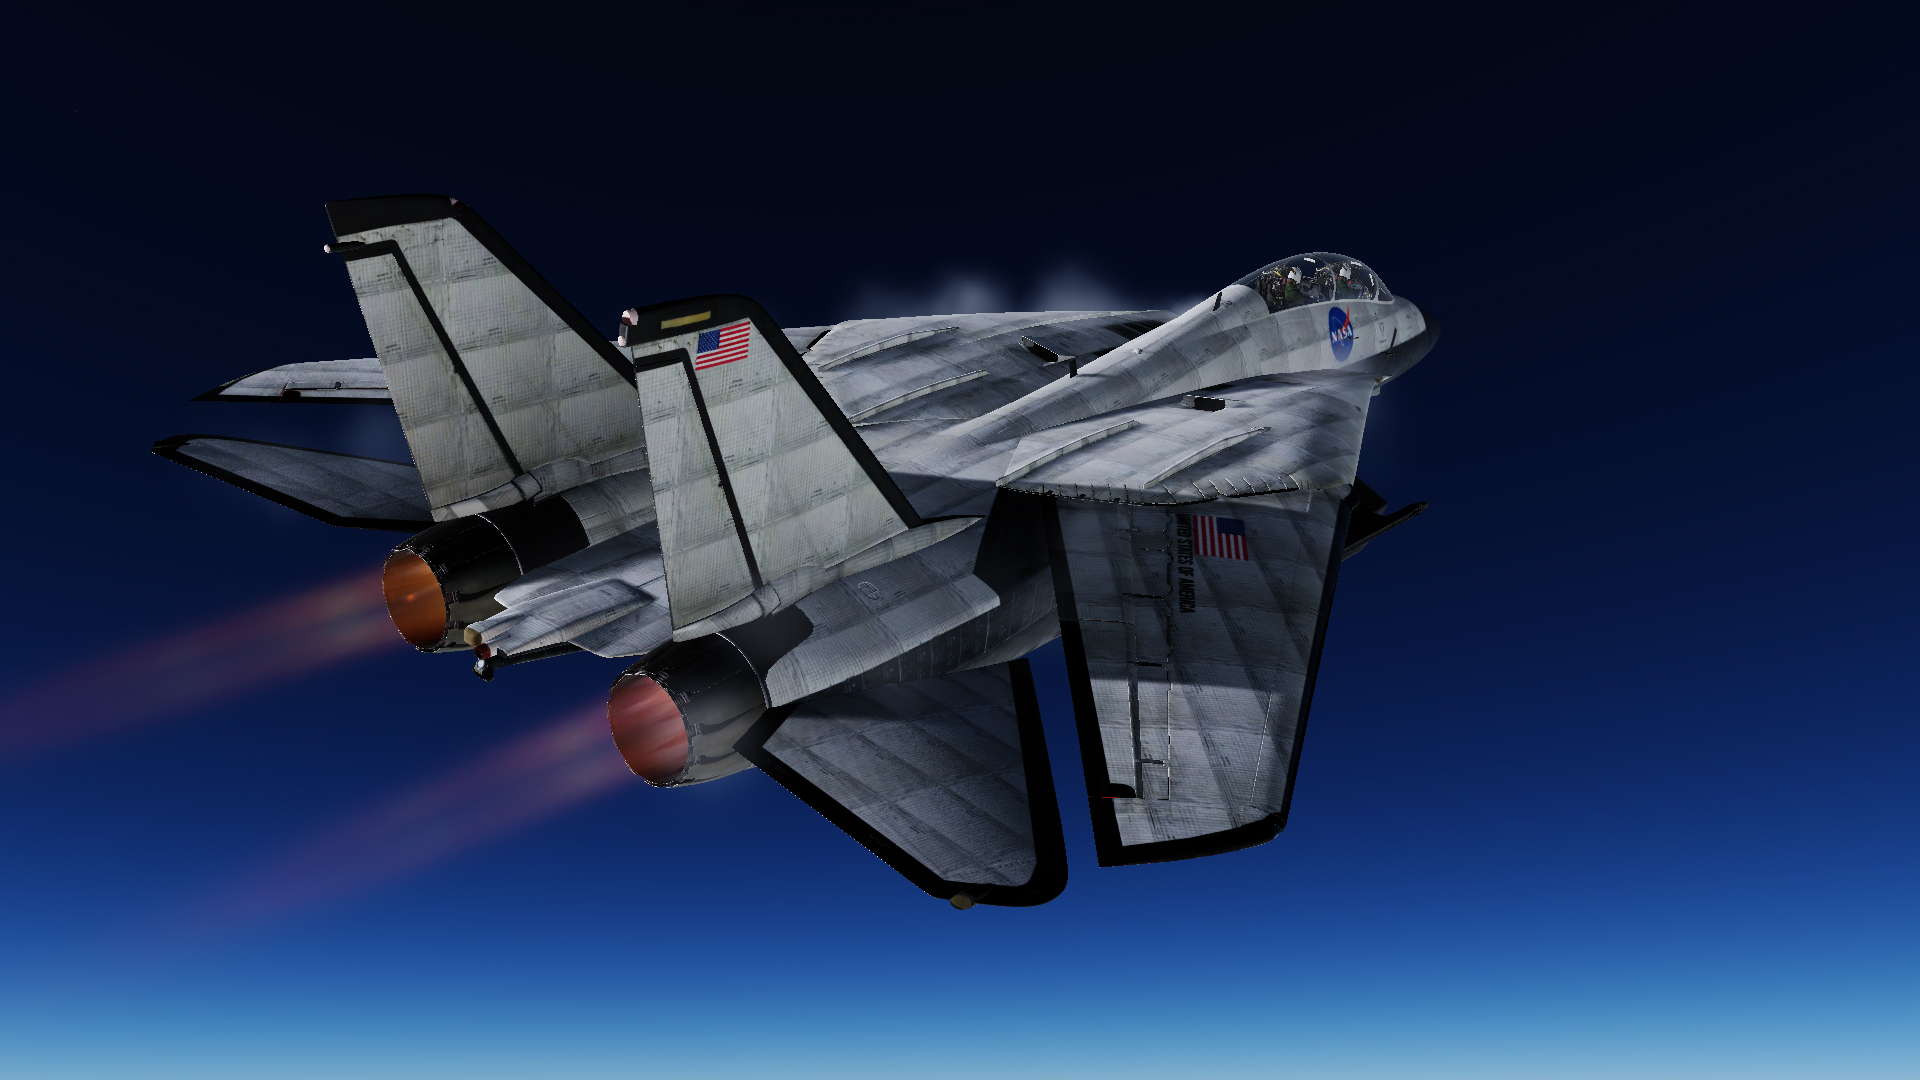 Nasa F-14 space shuttle skin